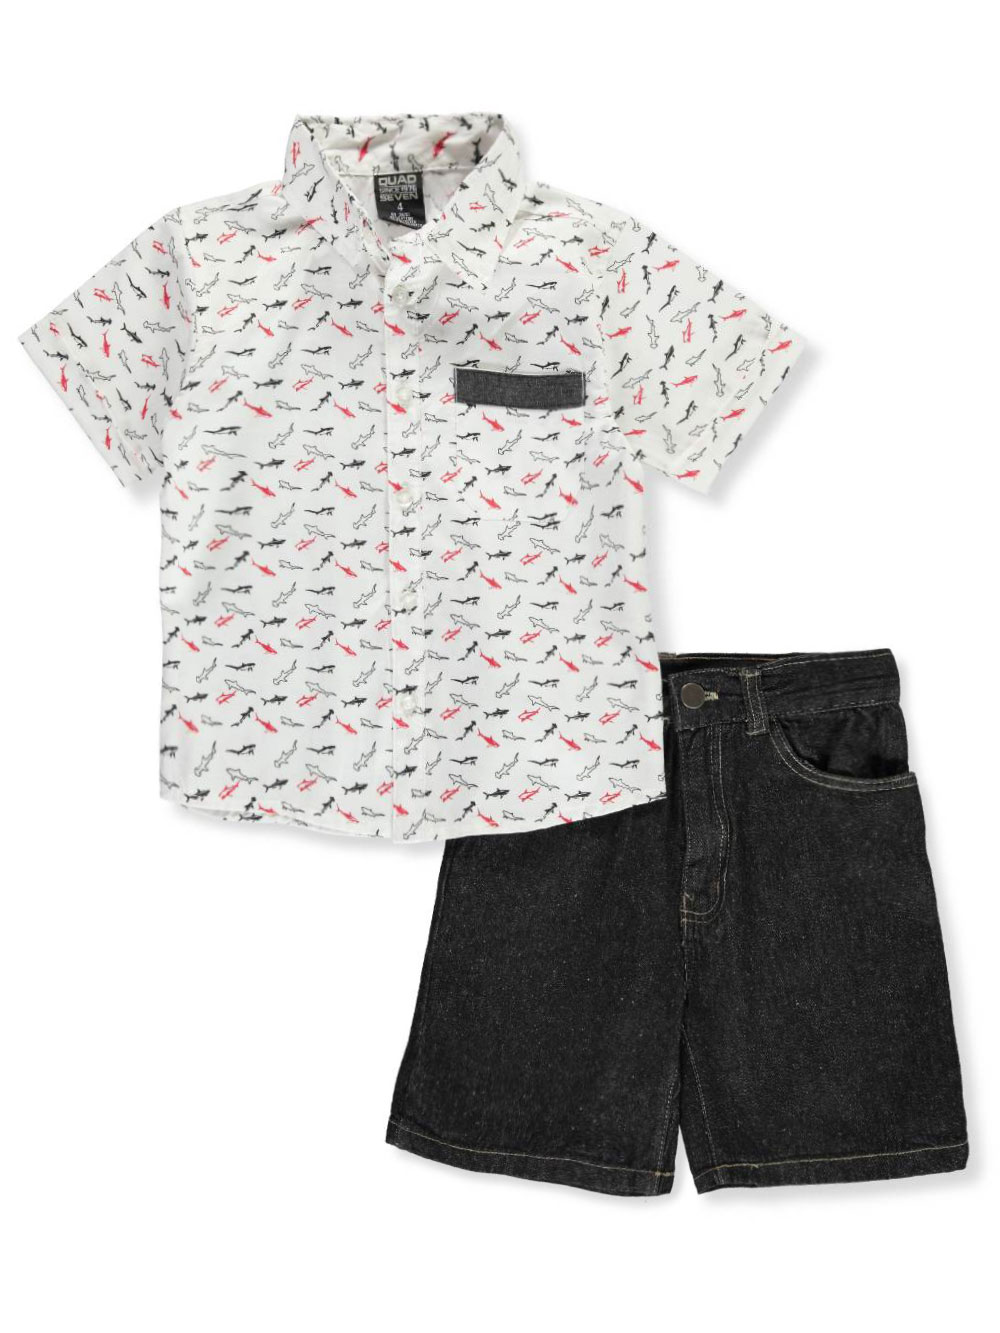 ce690e7ddc7 Boys  2-Piece Shorts Set Outfit by Quad Seven in blue and white from ...